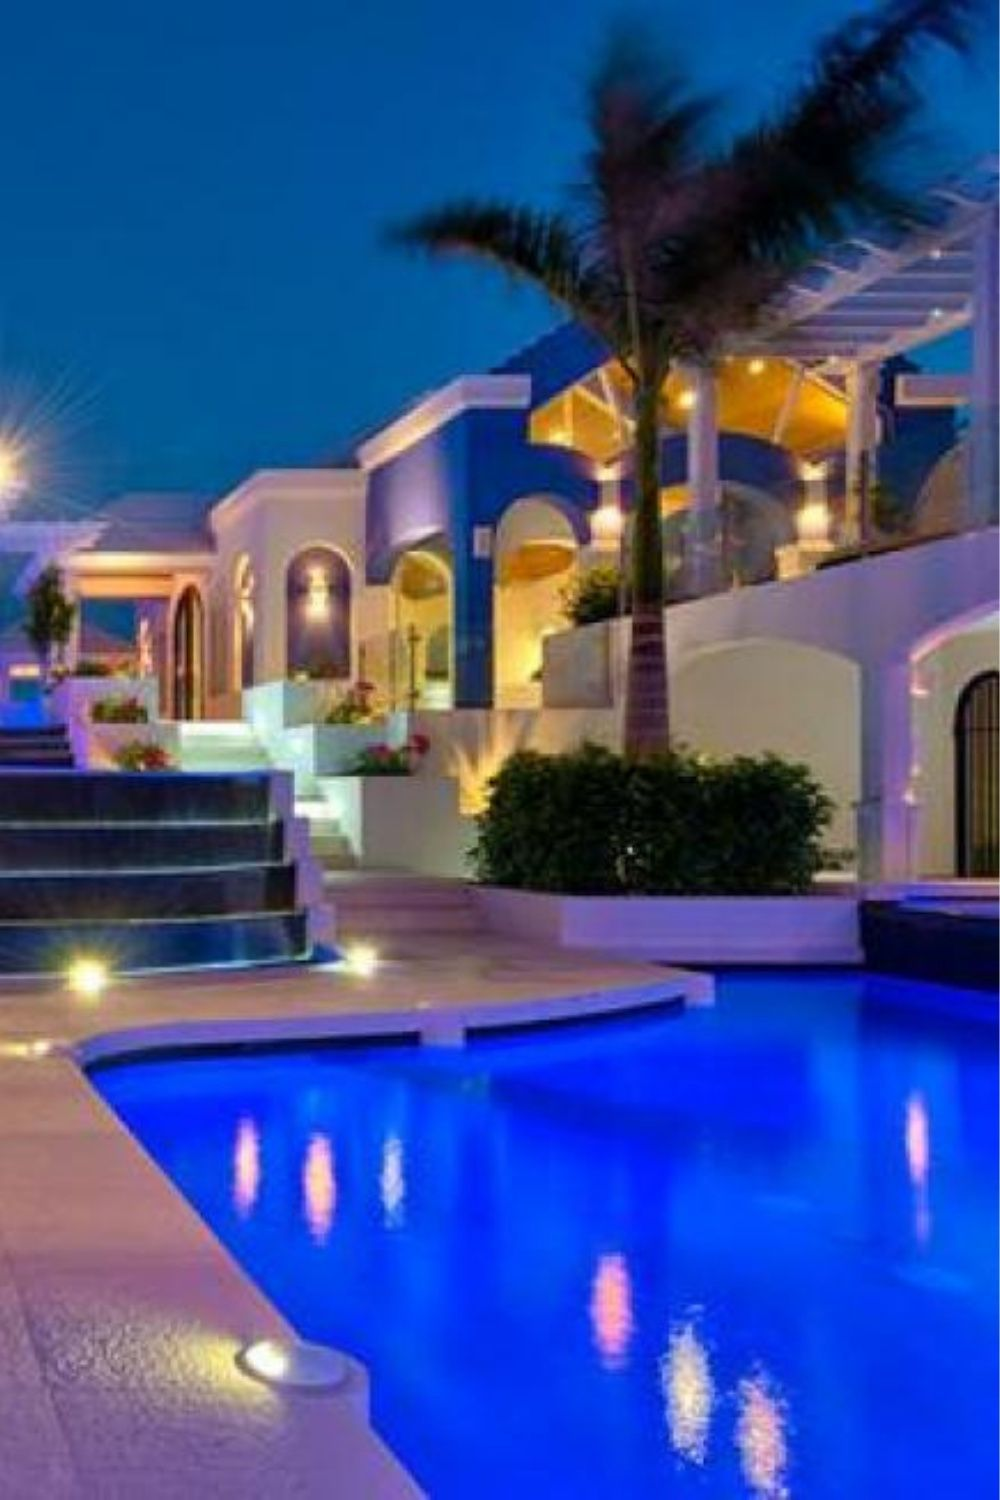 Hgtv S Mansion In Turks And Caicos Listed For 11 5 Million Mansions Beachfront House Luxury Pool